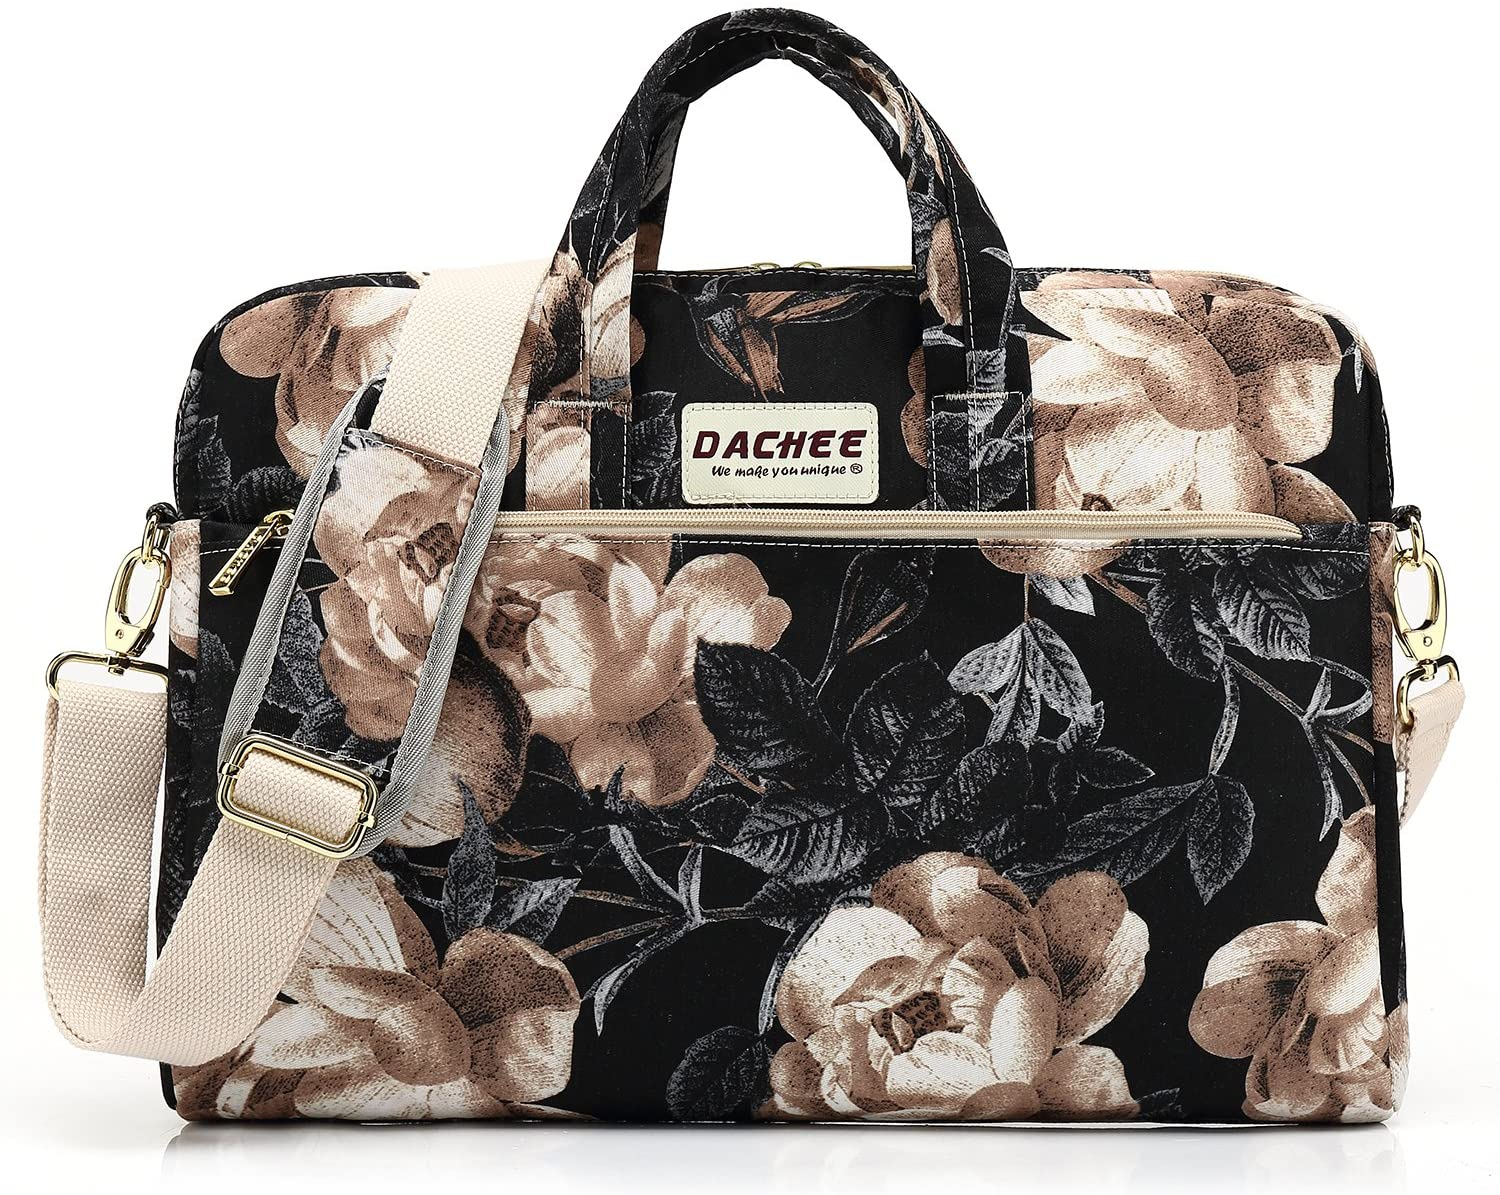 DACHEE Beige Rose Pattern 15 inch Waterproof Laptop Shoulder Messenger Bag for 14 Inch to15.6 inch Laptop and Macbook Pro 15 laptop Case